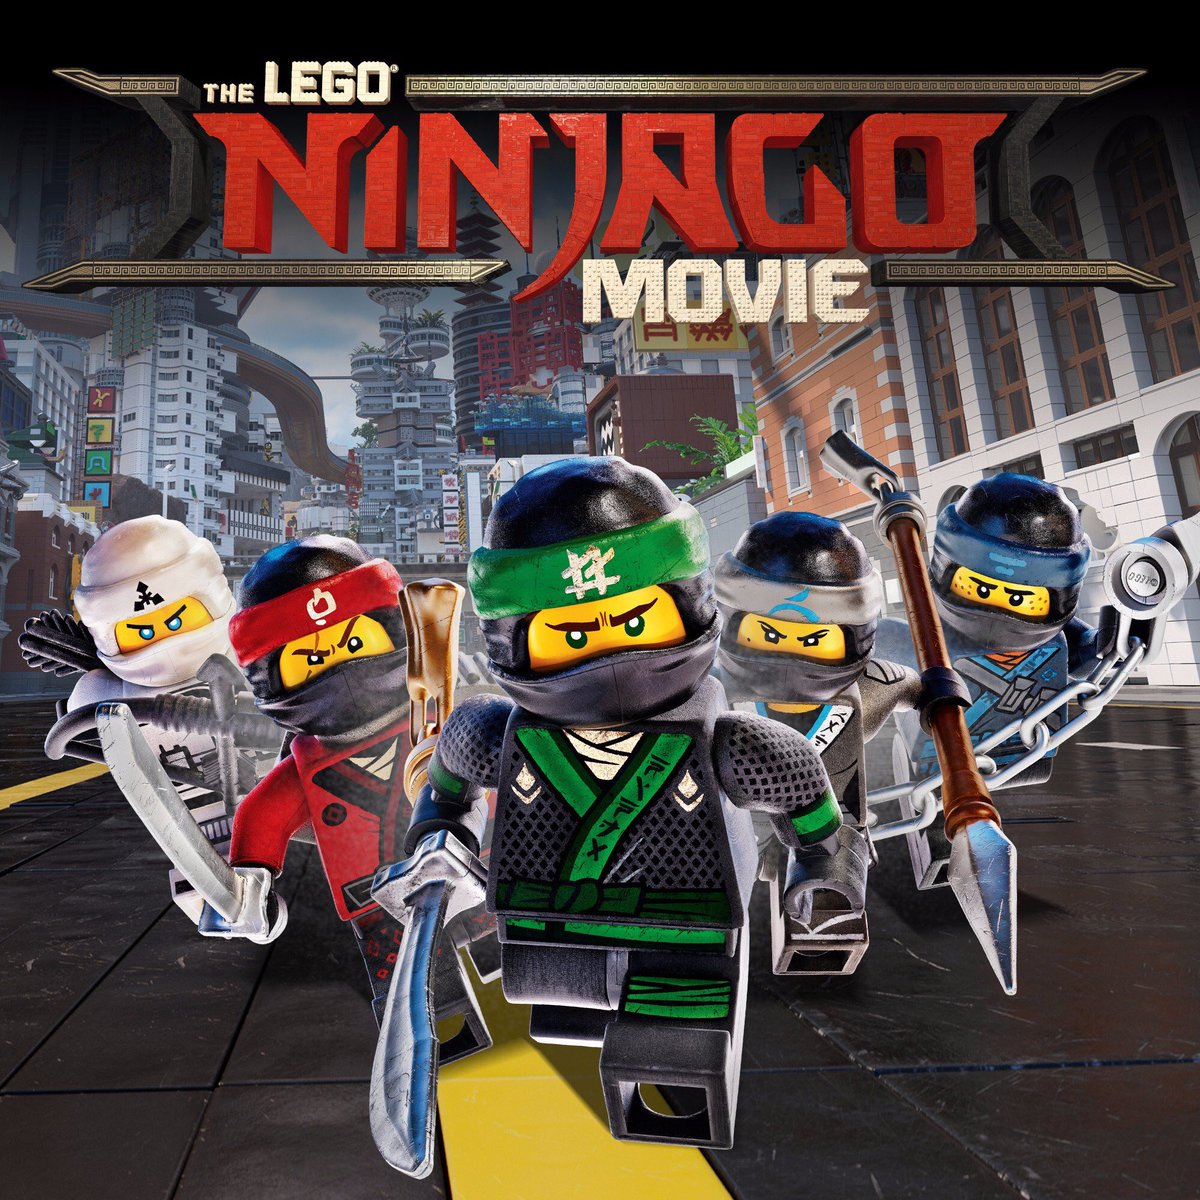 Lego Ninjago Movie.jpg